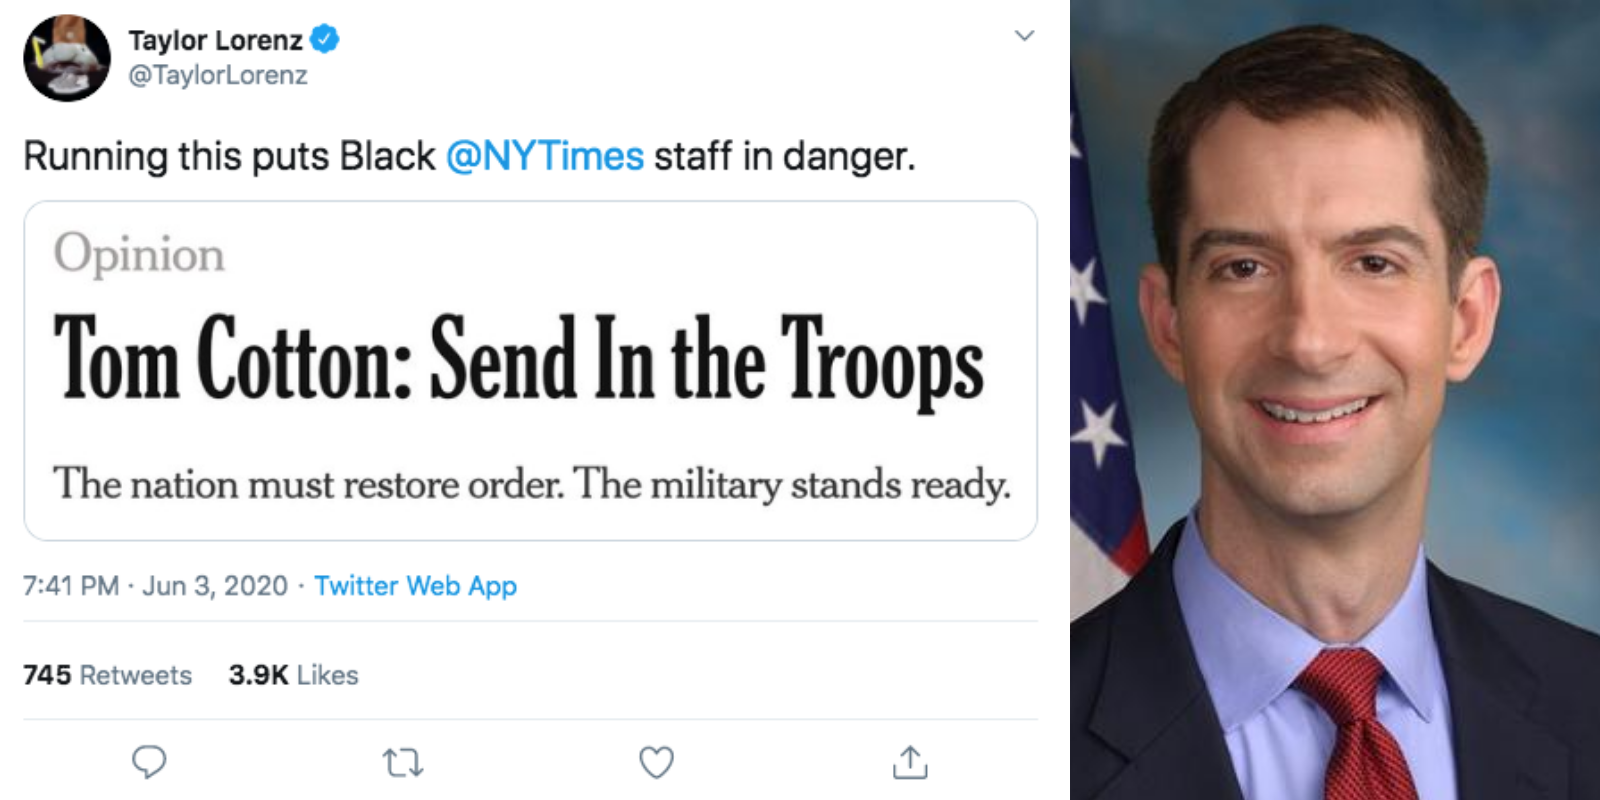 Tom Cotton's New York Times op-ed prompts unhinged liberal meltdown